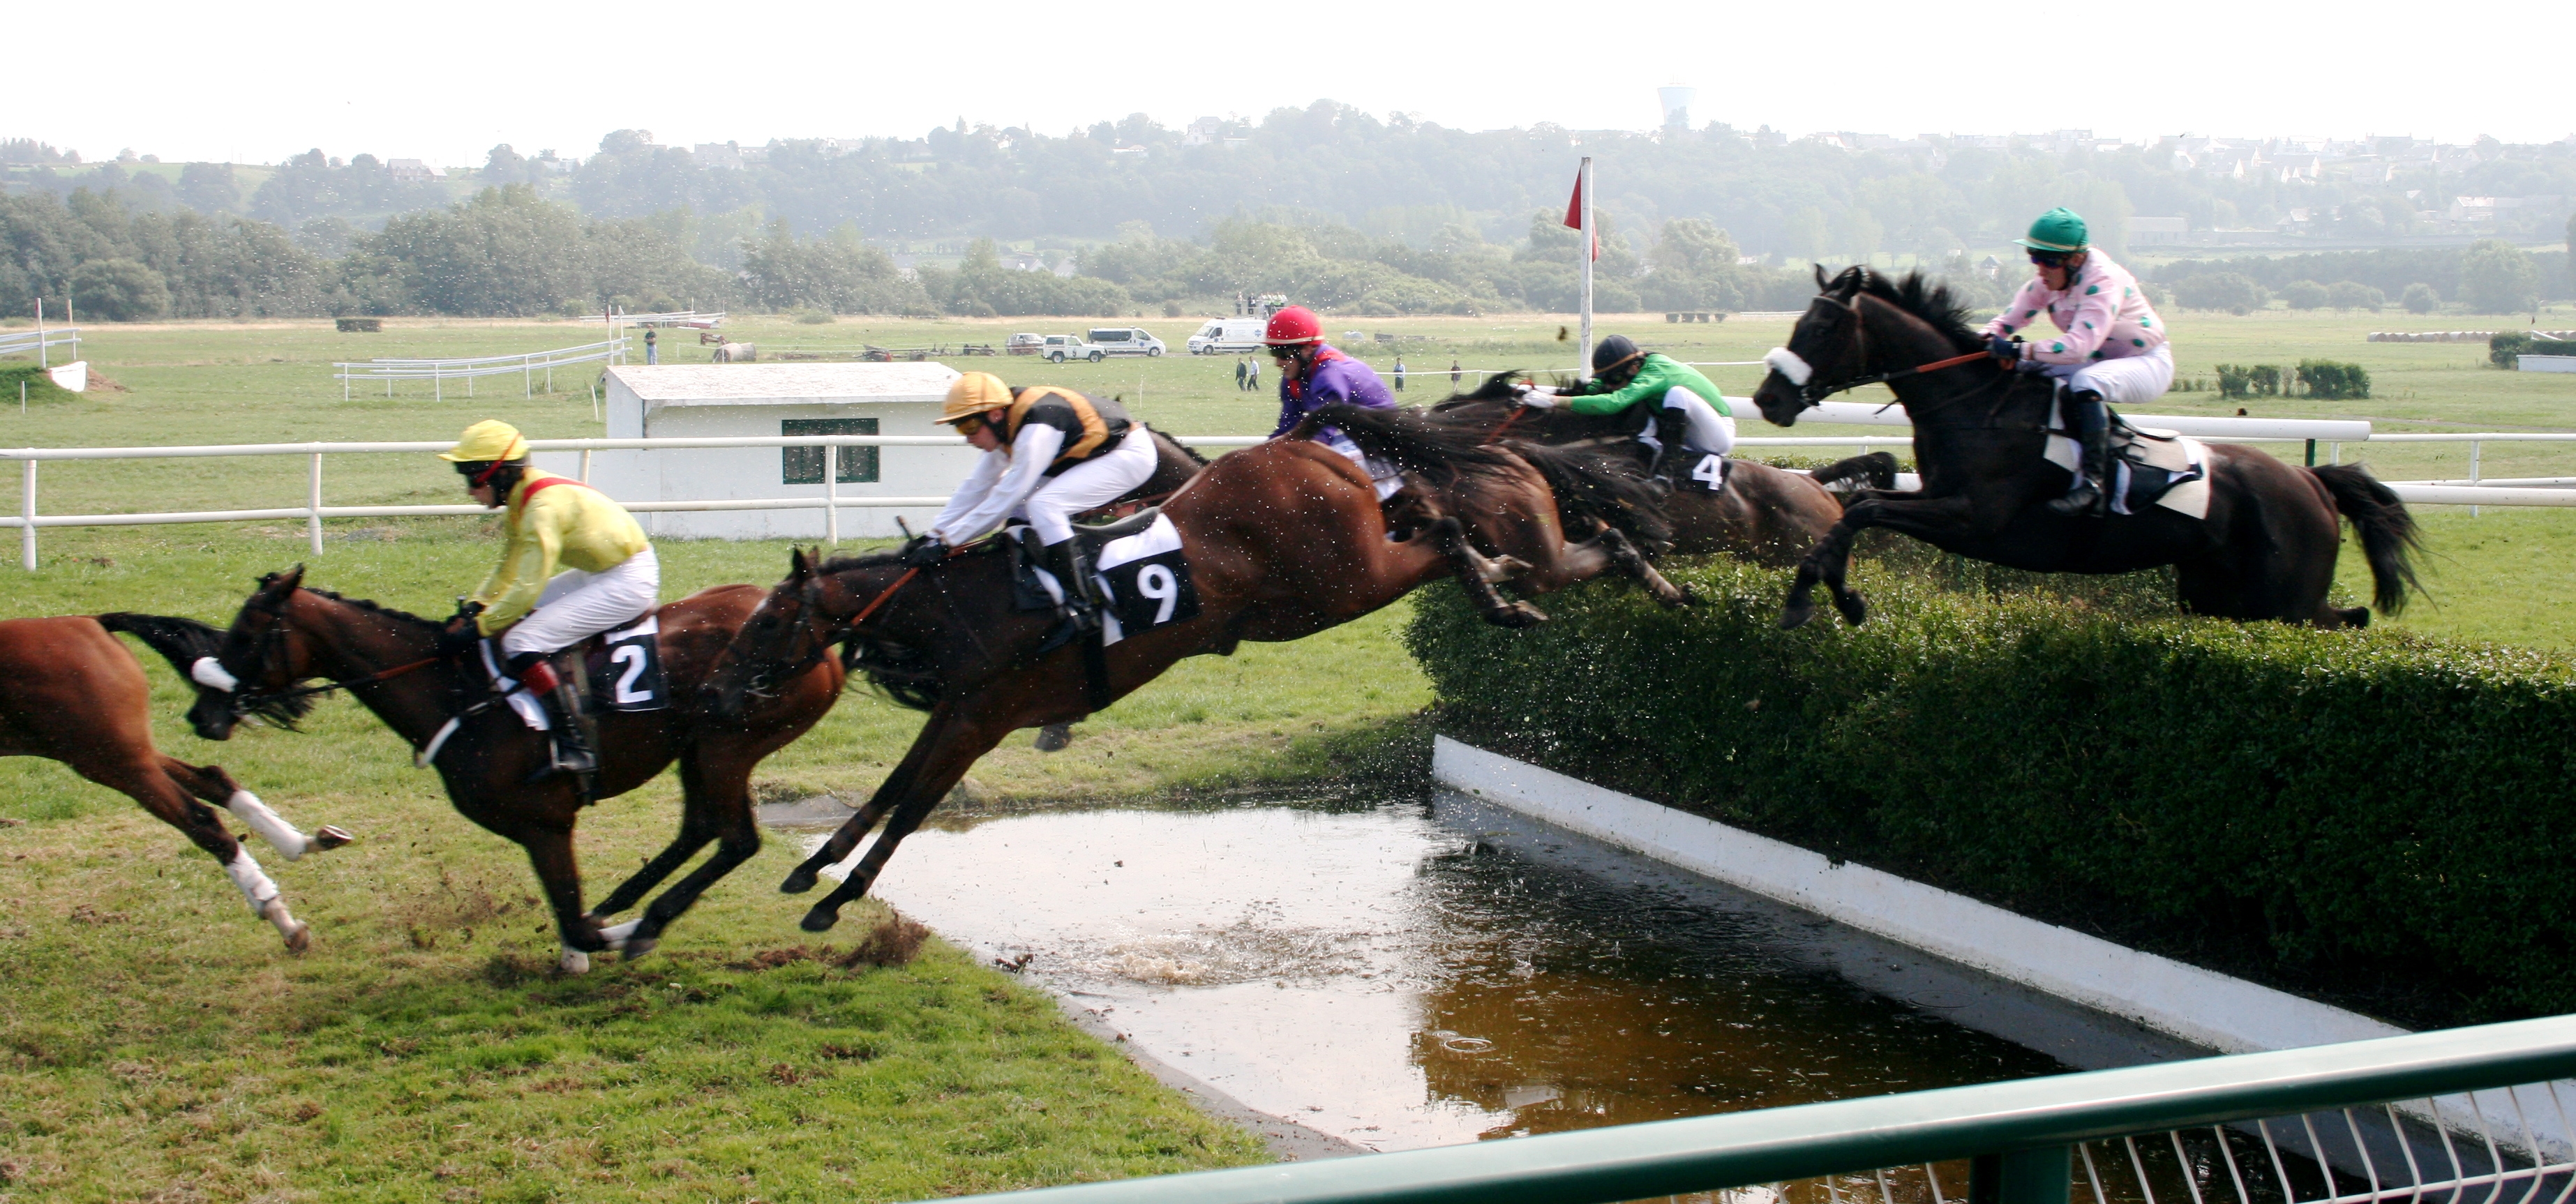 Steeplechase - Wikipedia, the free encyclopedia